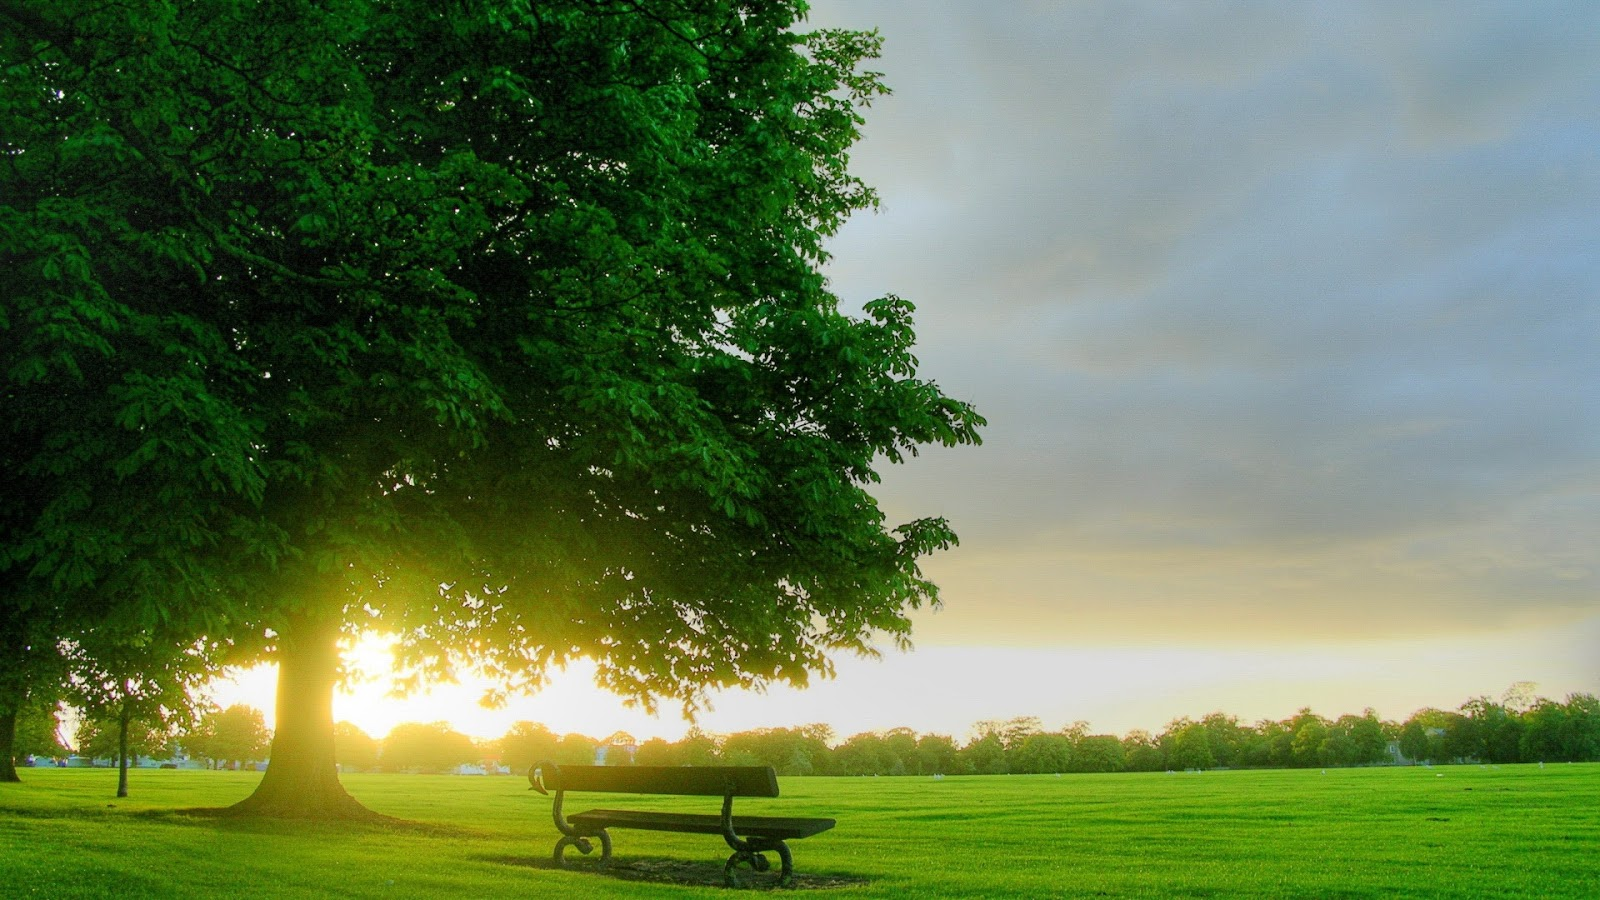 A big tree with green leaves in a grassfield with a wooden bench at sunset or dawn